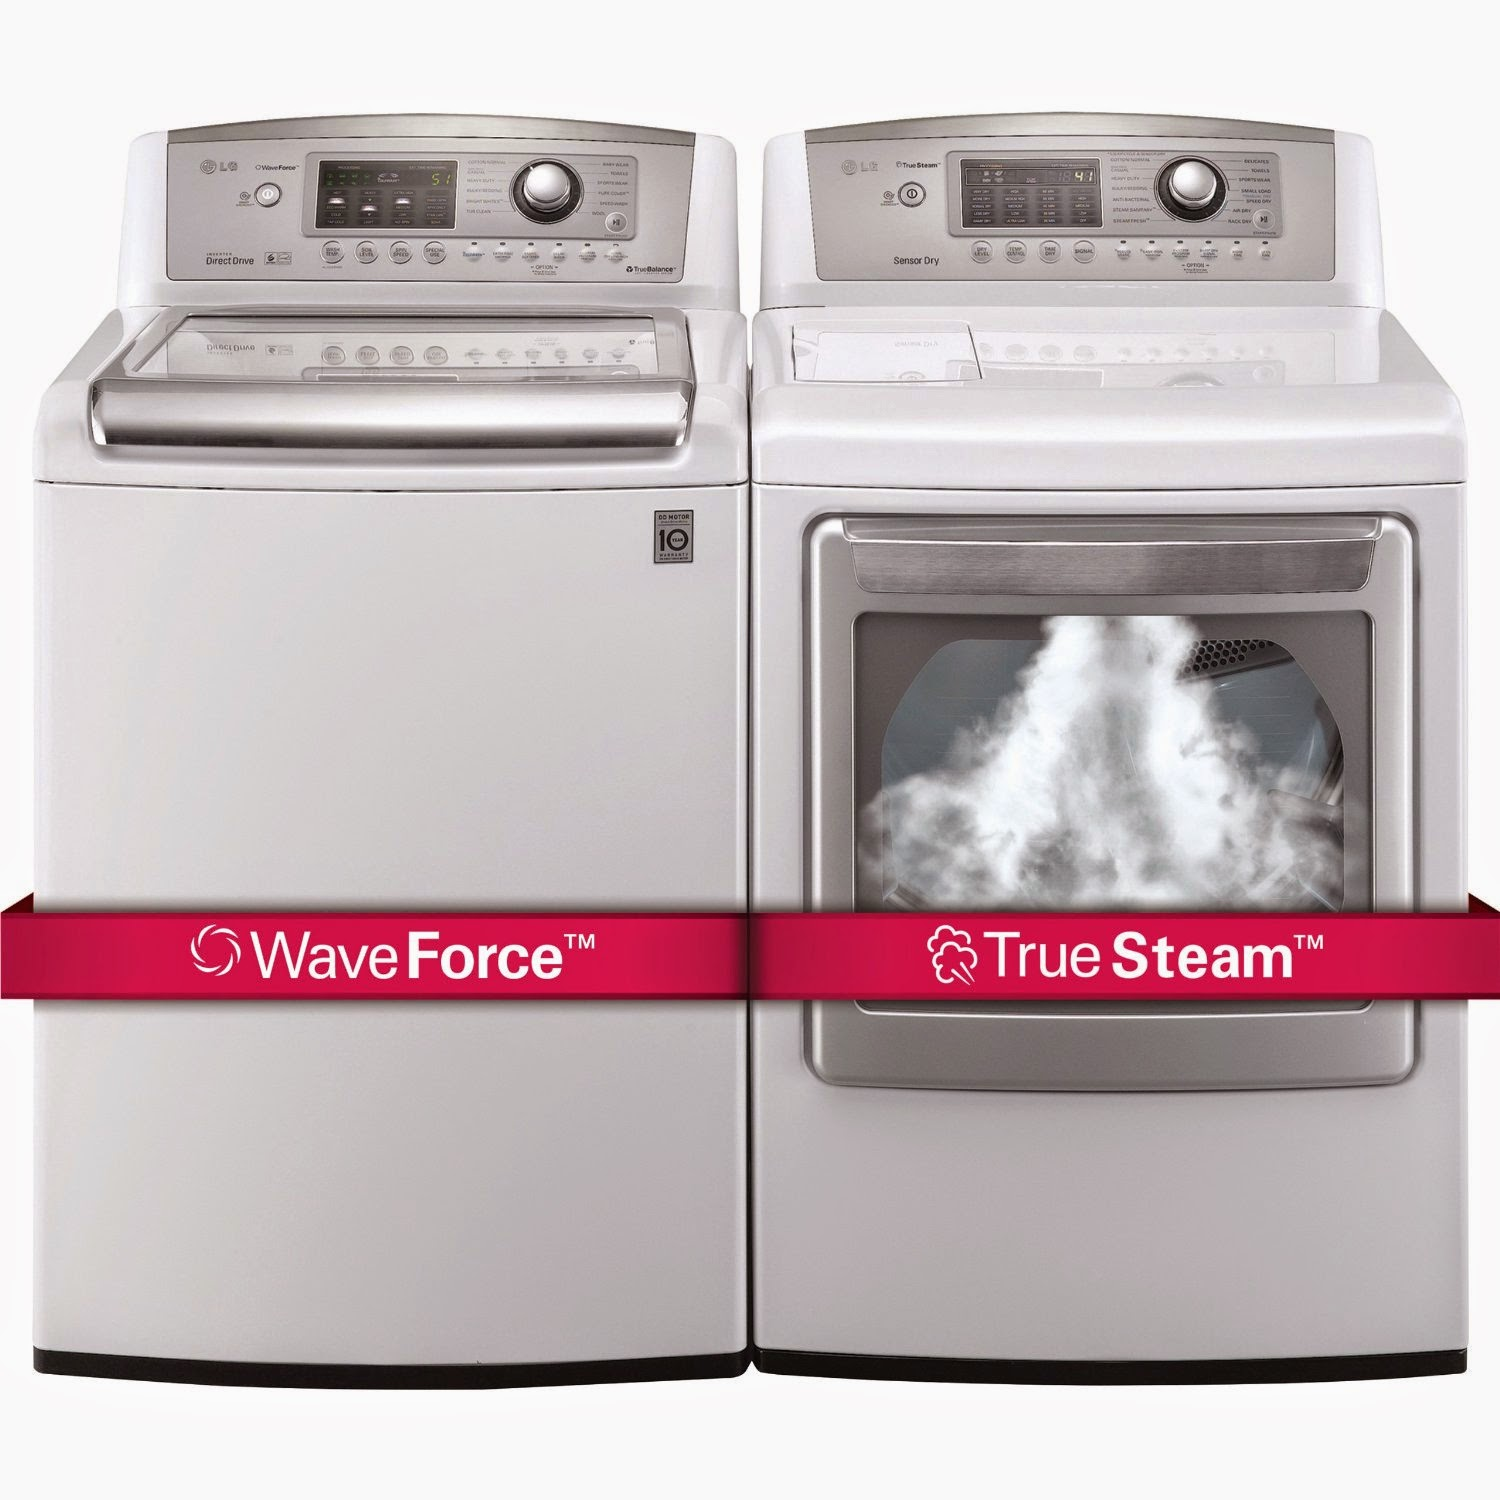 lg ultra large top load laundry pair with wave force technology dryer